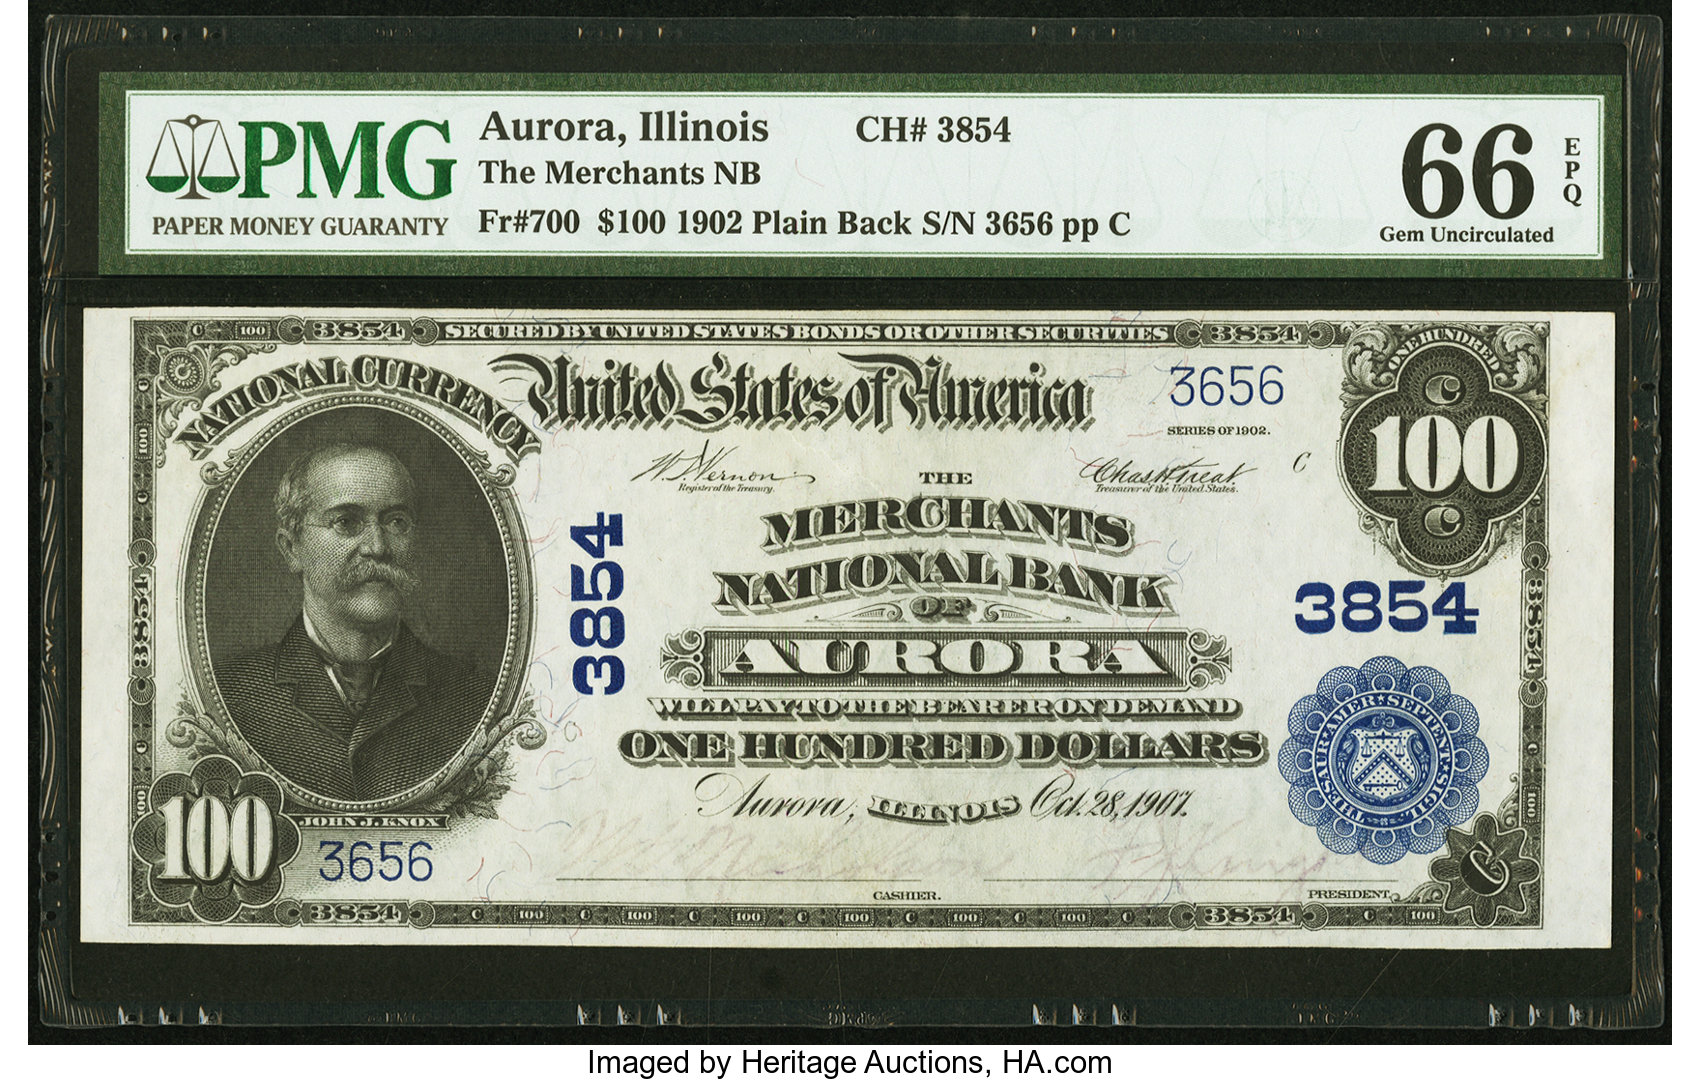 sample image for 1902 3rd Charter Period $100  Plain Back 3rd Issue (Fr.# 700)